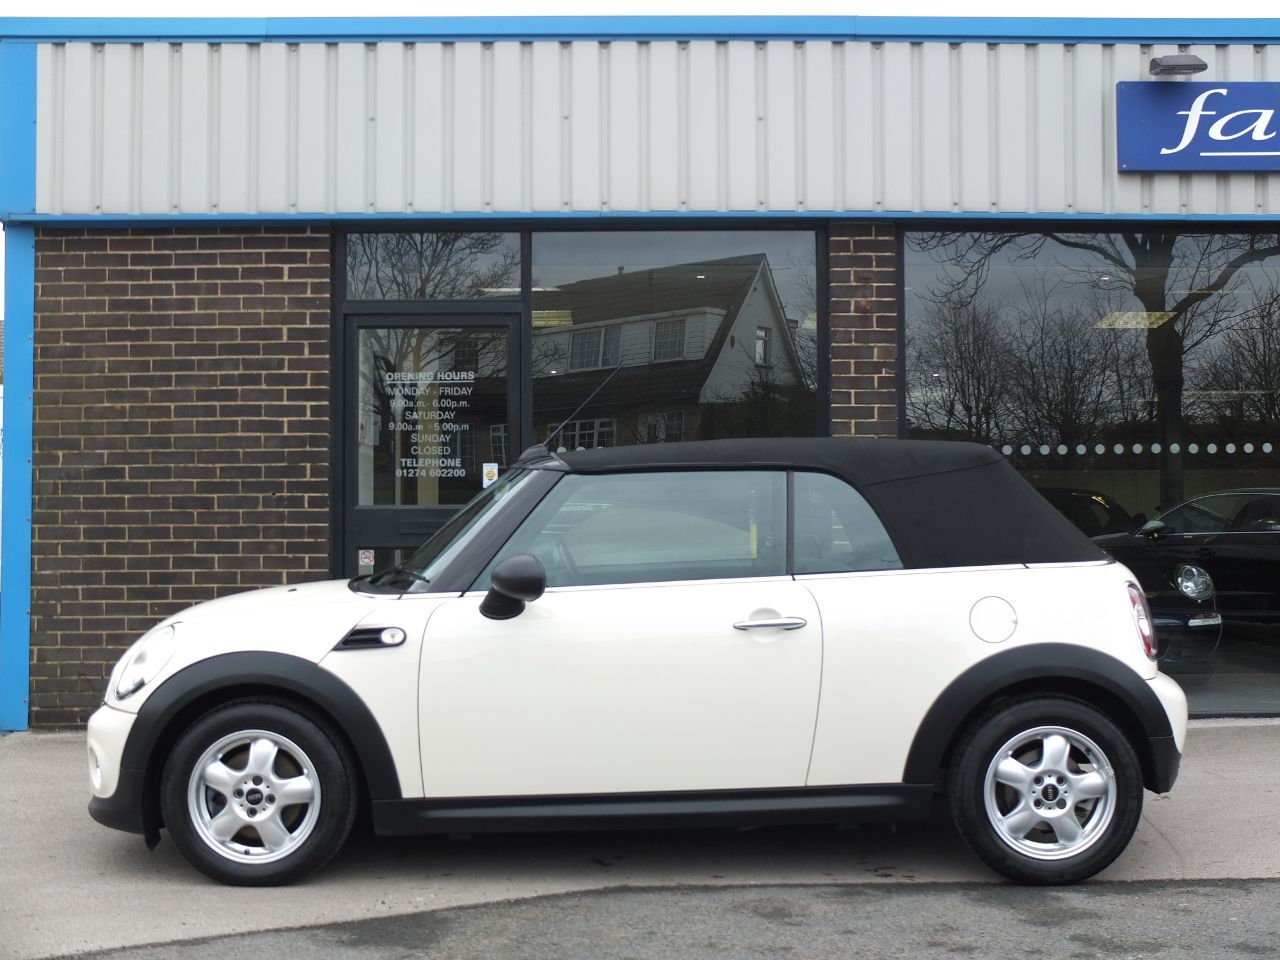 Mini Convertible 1.6 One Convertible Pepper Pack Convertible Petrol Pepper White